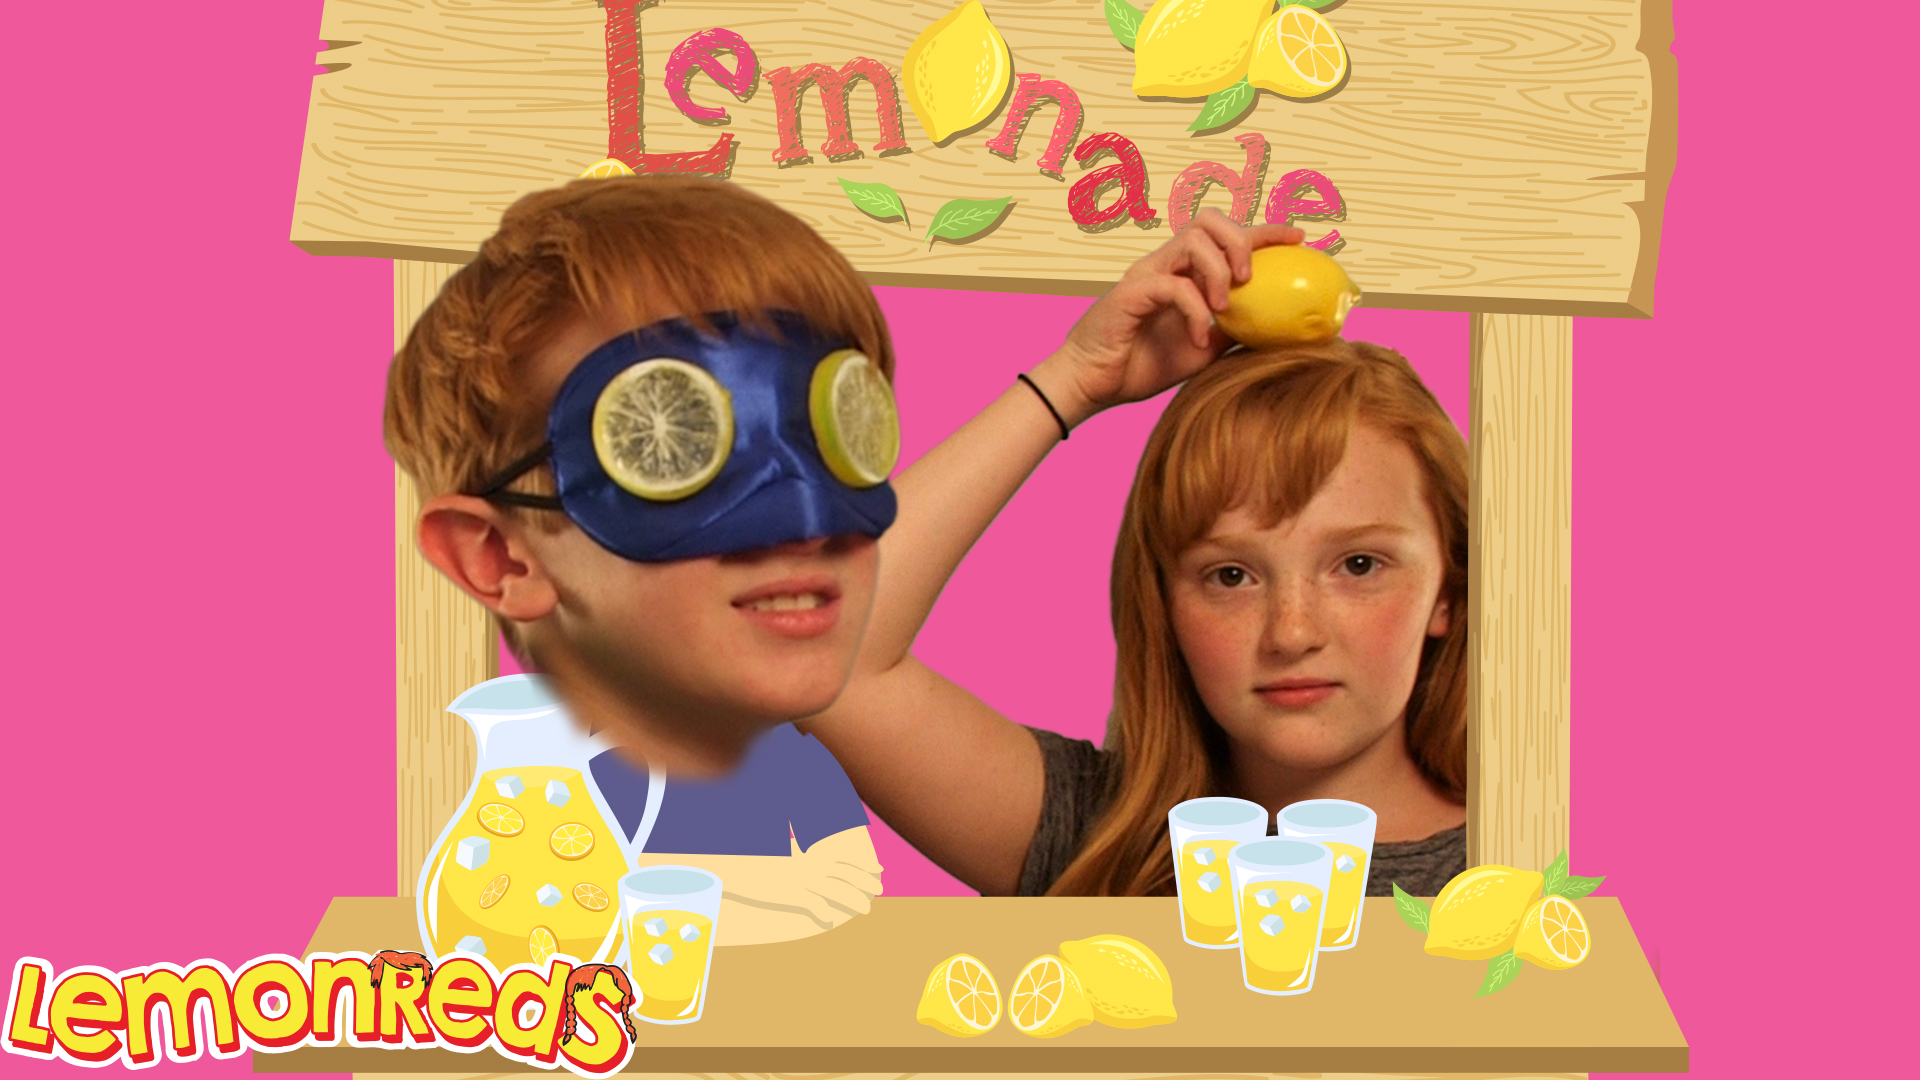 lemonade stand season three This report provides factual quantative information on lemonade stand, sourced from financial statements, the business' general journal and financial data collected during seasons one, two and three the following economic summary report will consider how well lemonade stand's business is.